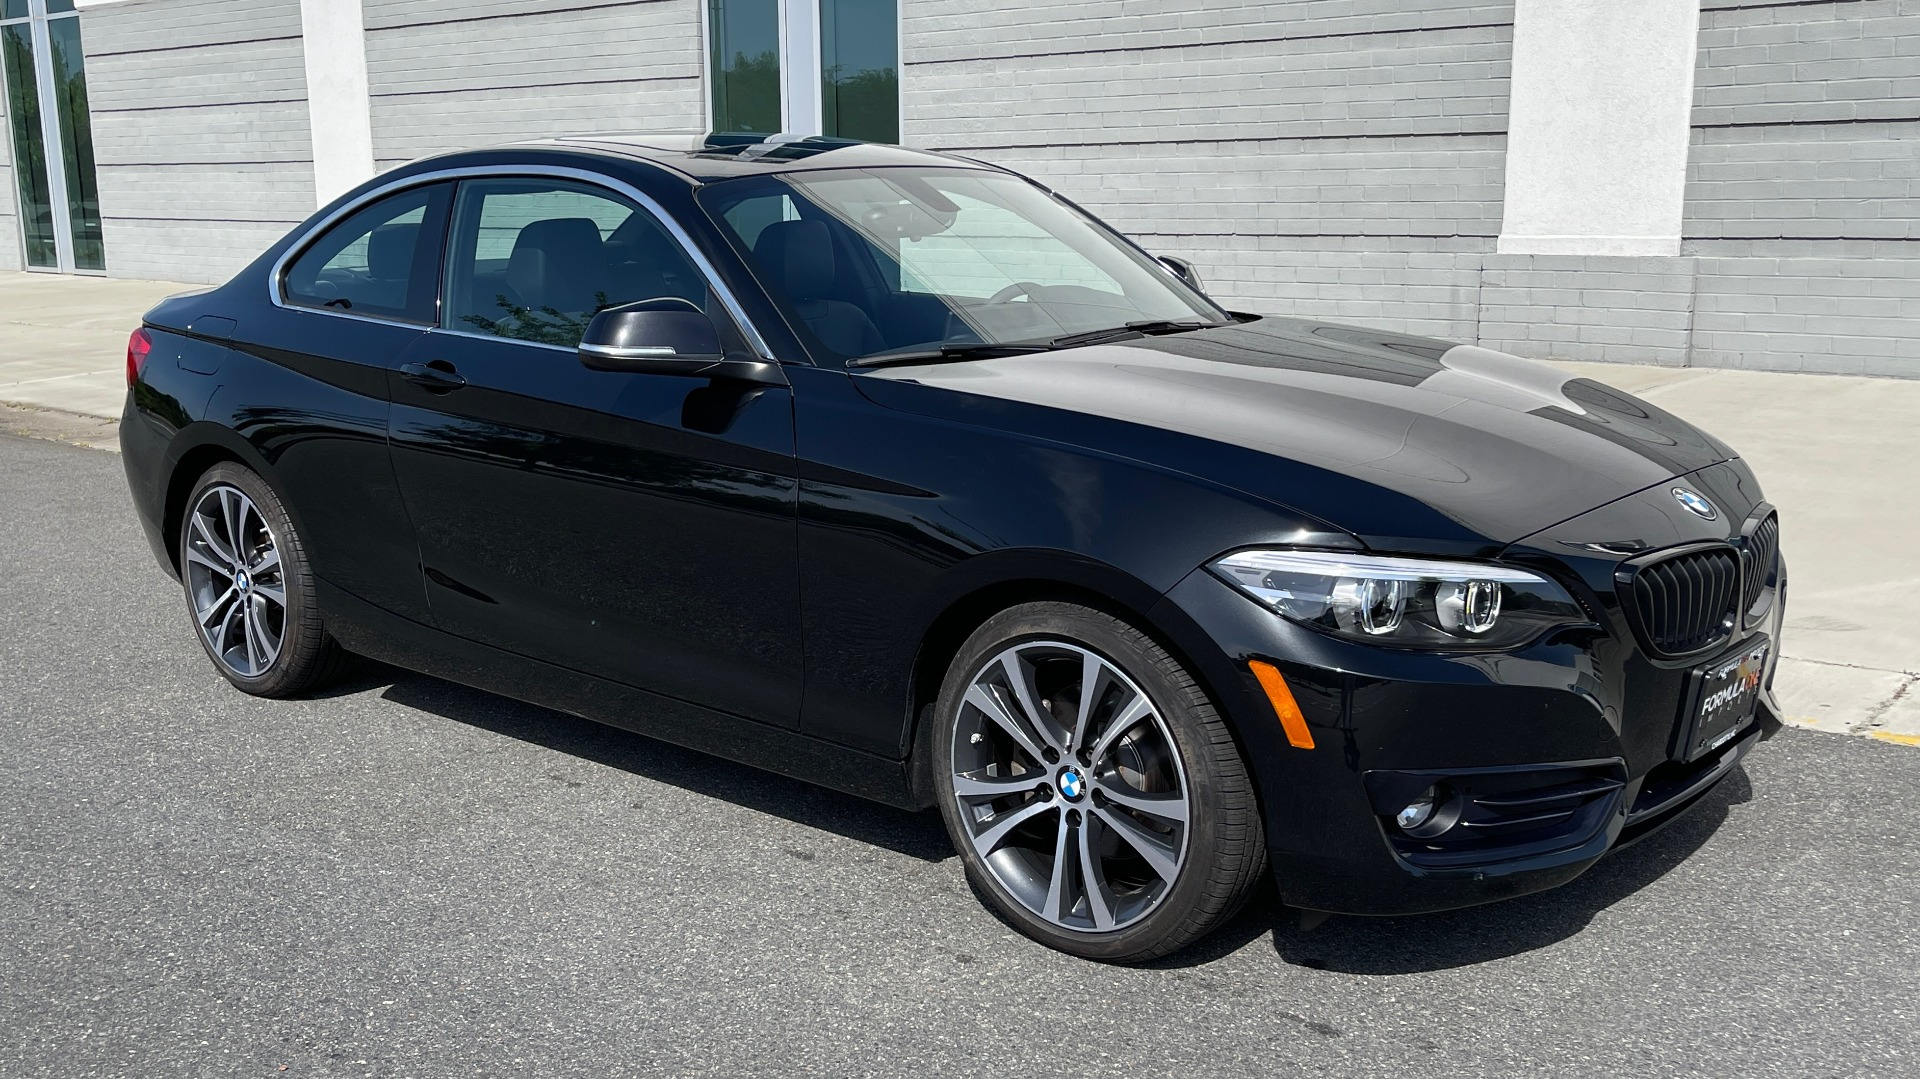 Used 2018 BMW 2 SERIES 230I XDRIVE PREMIUM / CONV PKG / NAV / SUNROOF / REARVIEW for sale $30,795 at Formula Imports in Charlotte NC 28227 6